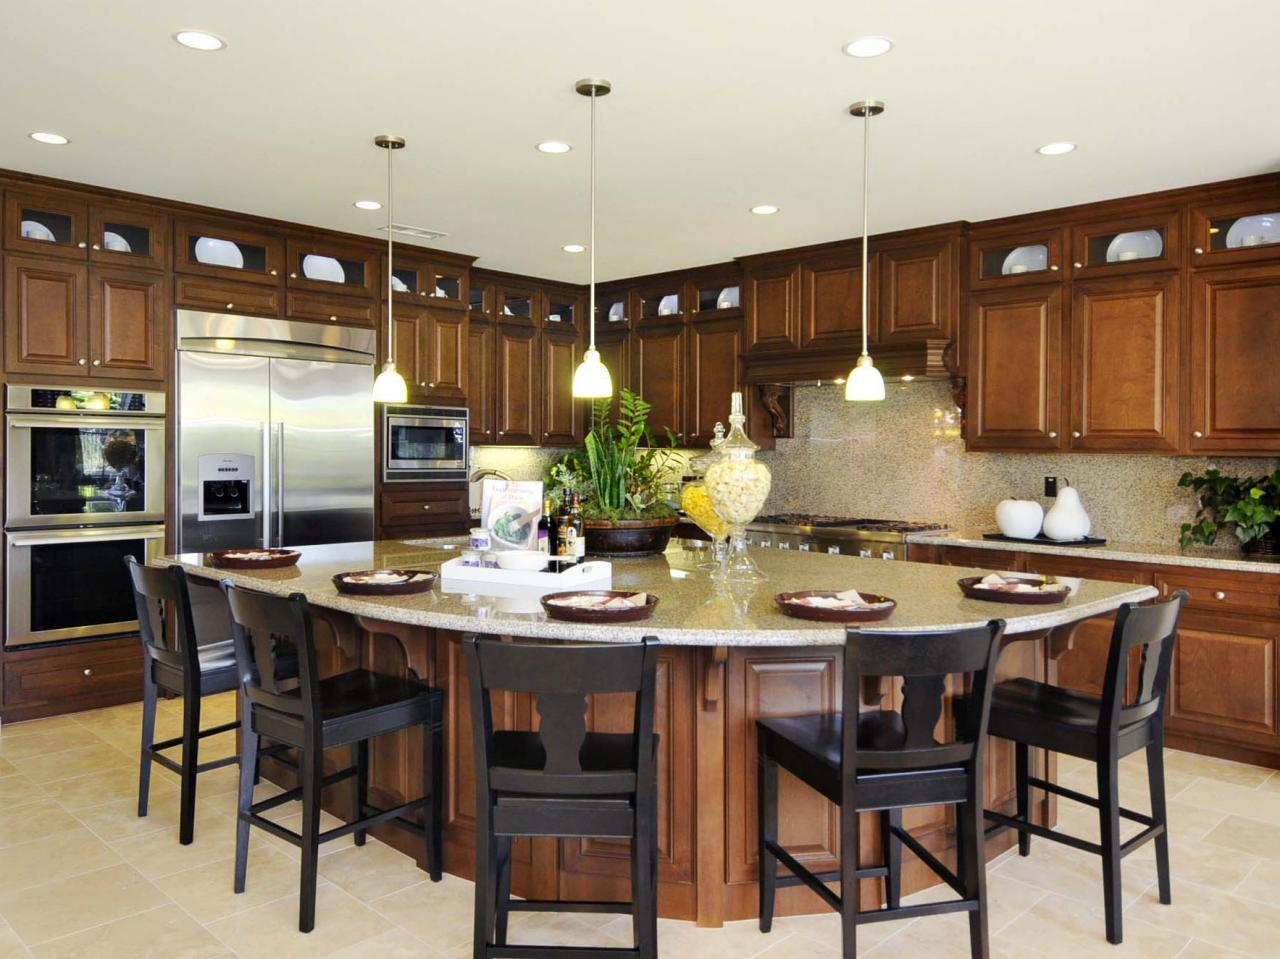 Uncategorized Kitchen Island With Seating building the kitchen island with seating to your own house bright ceiling lamps above wooden islands for gorgeous oak cabinets